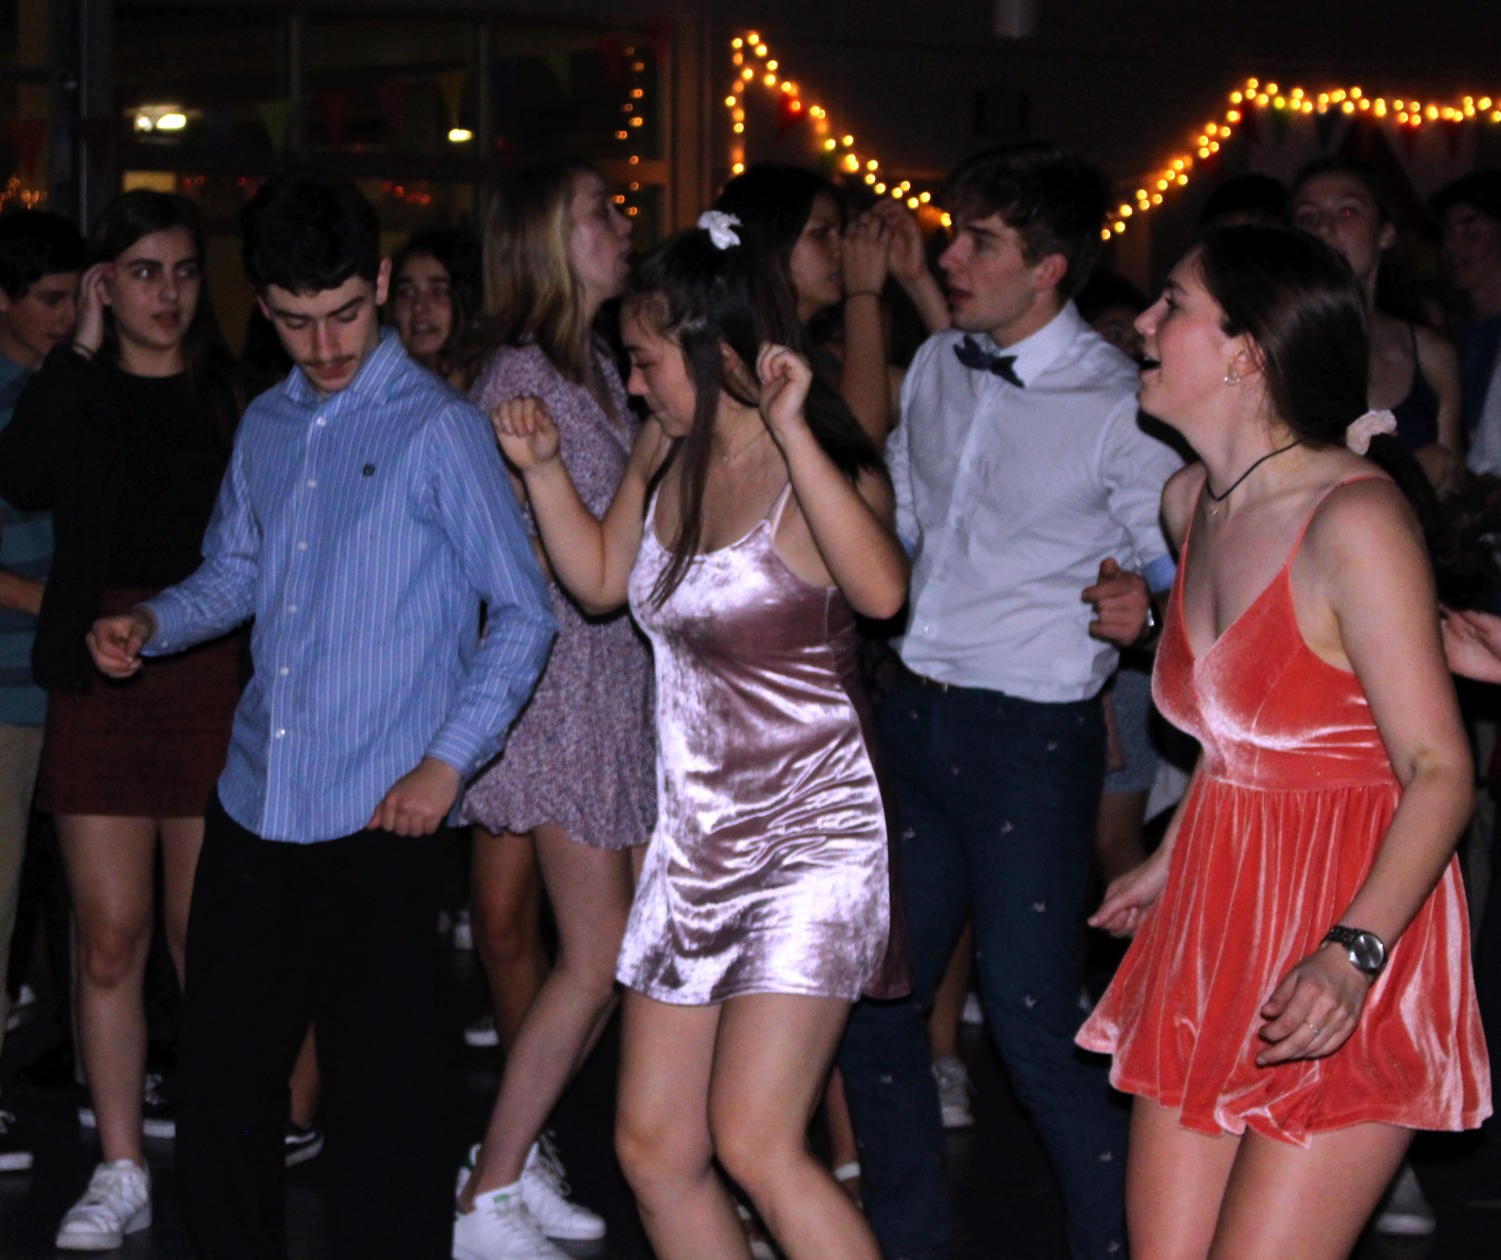 MORP brings together students from all parts of the school, including special education and ASB.